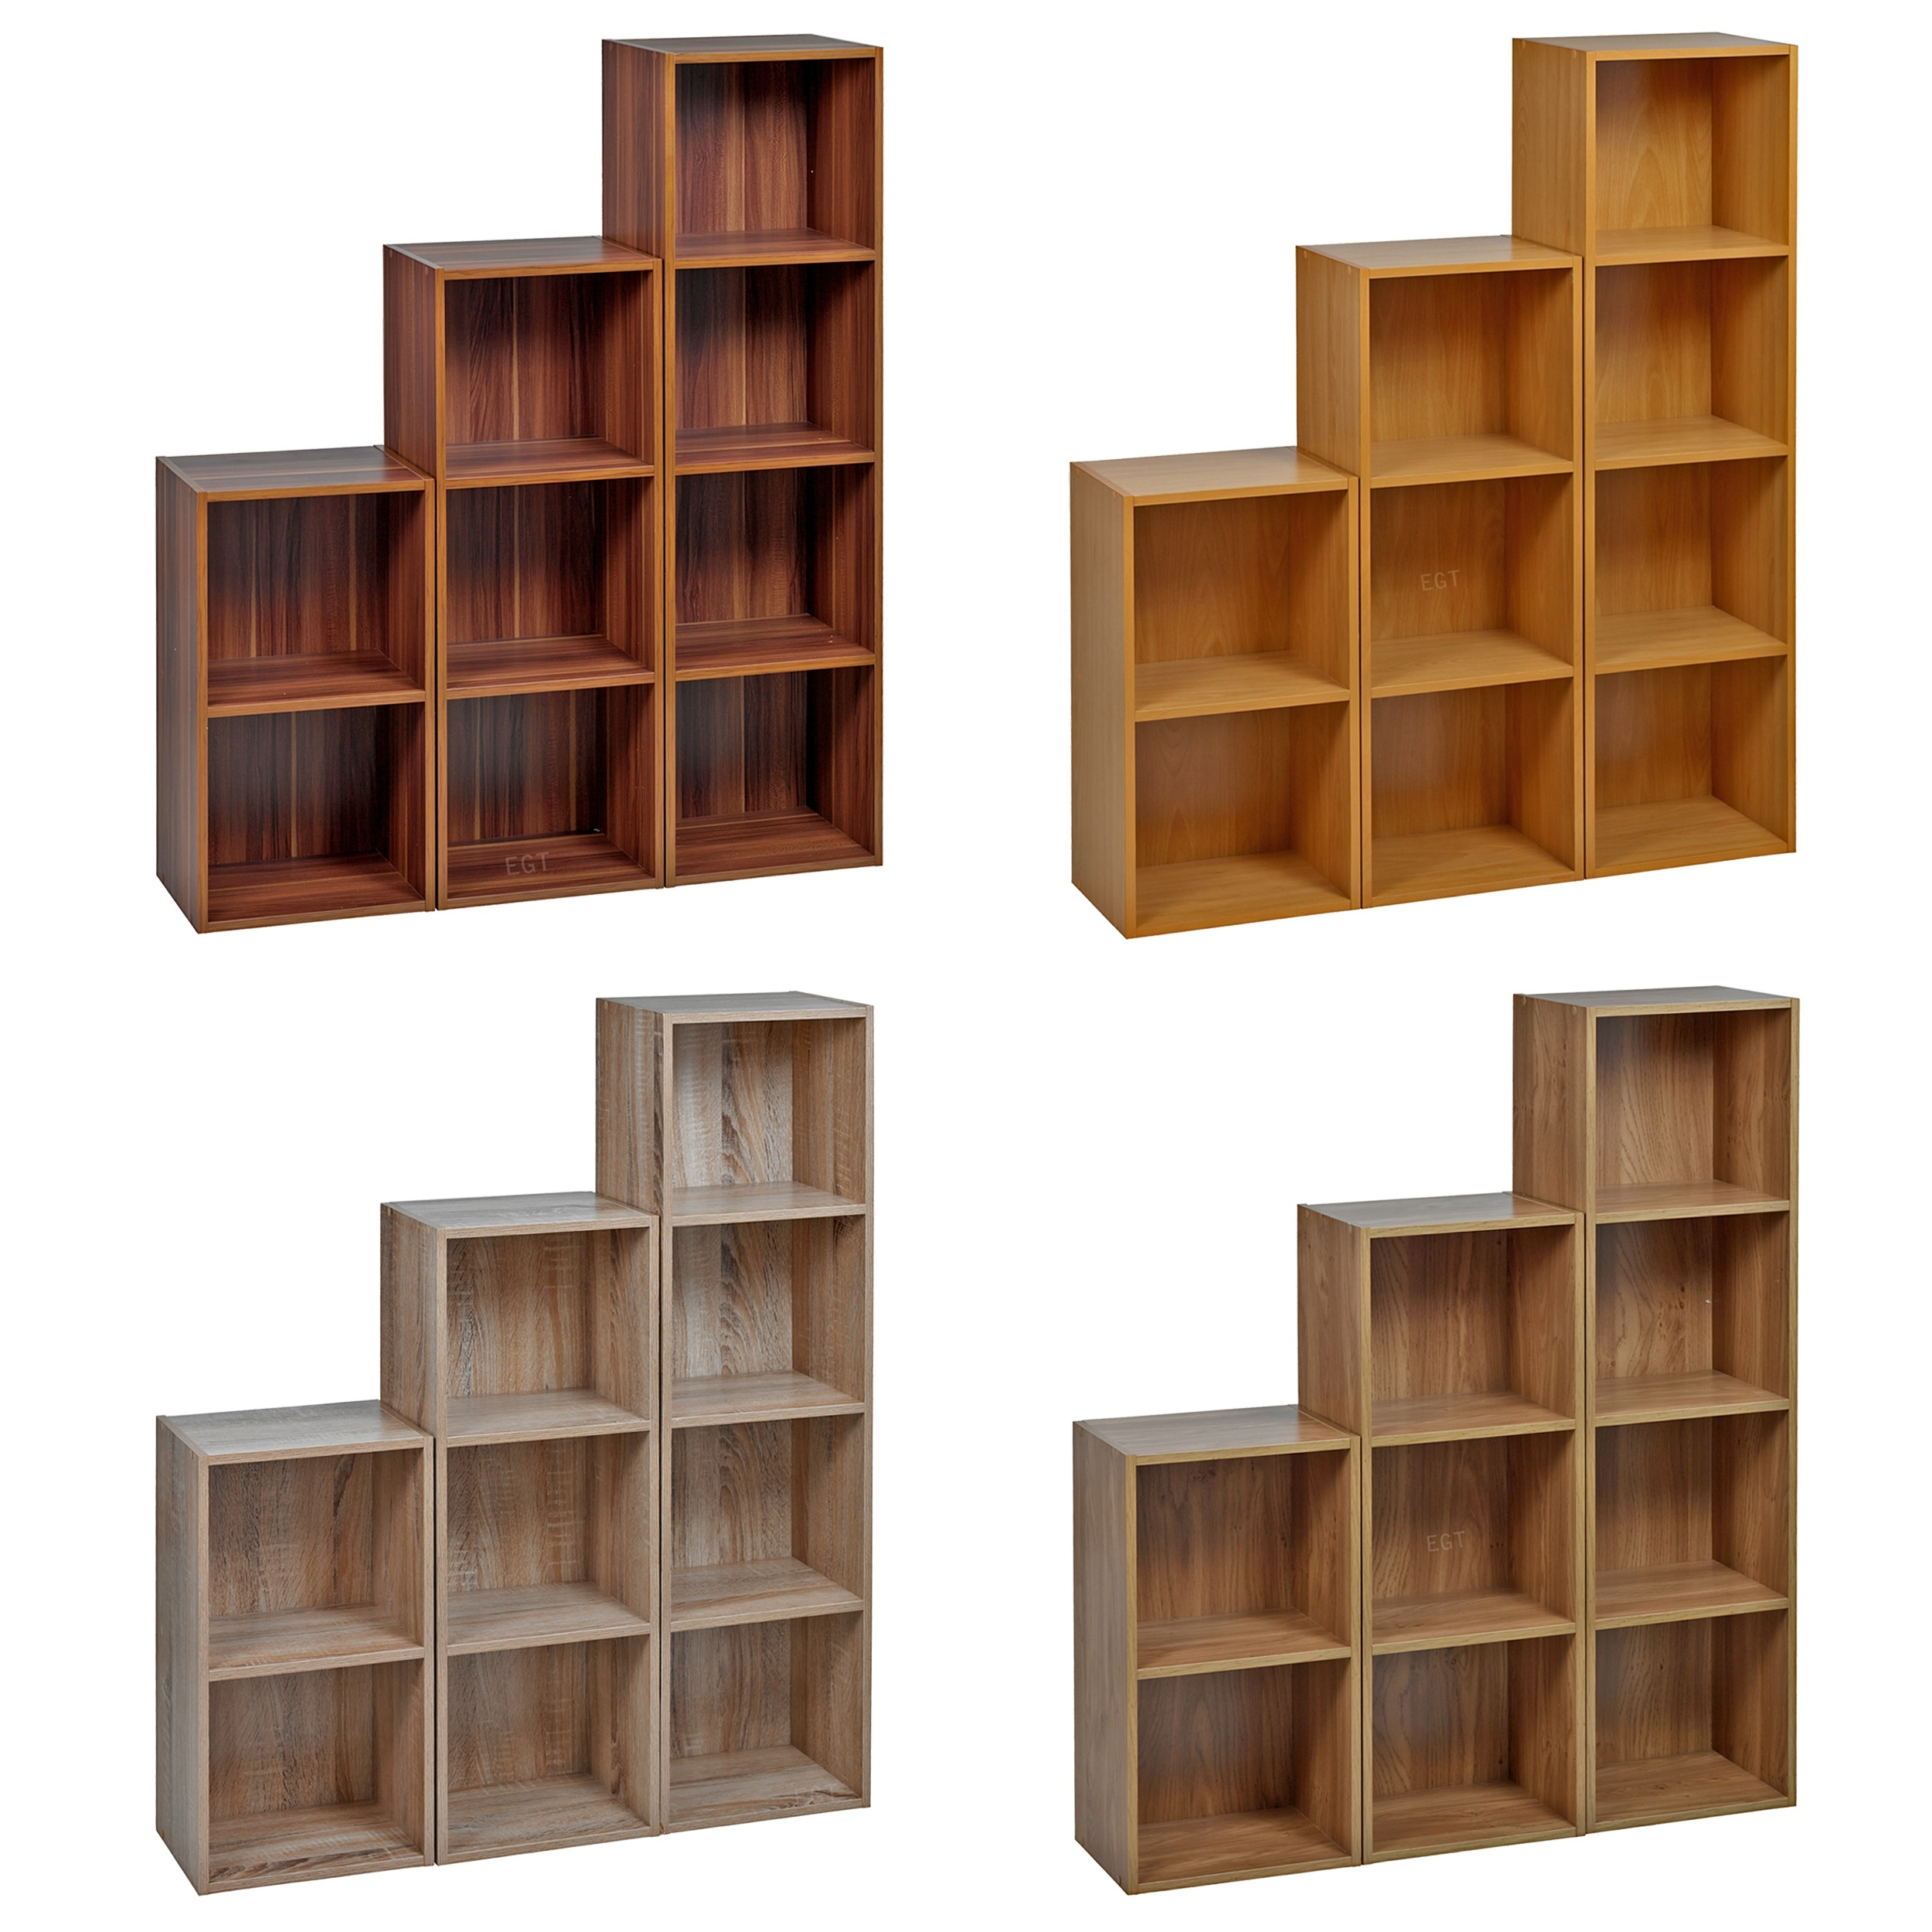 Set of stylish easily assembled wooden cube bookcase shelves ideal